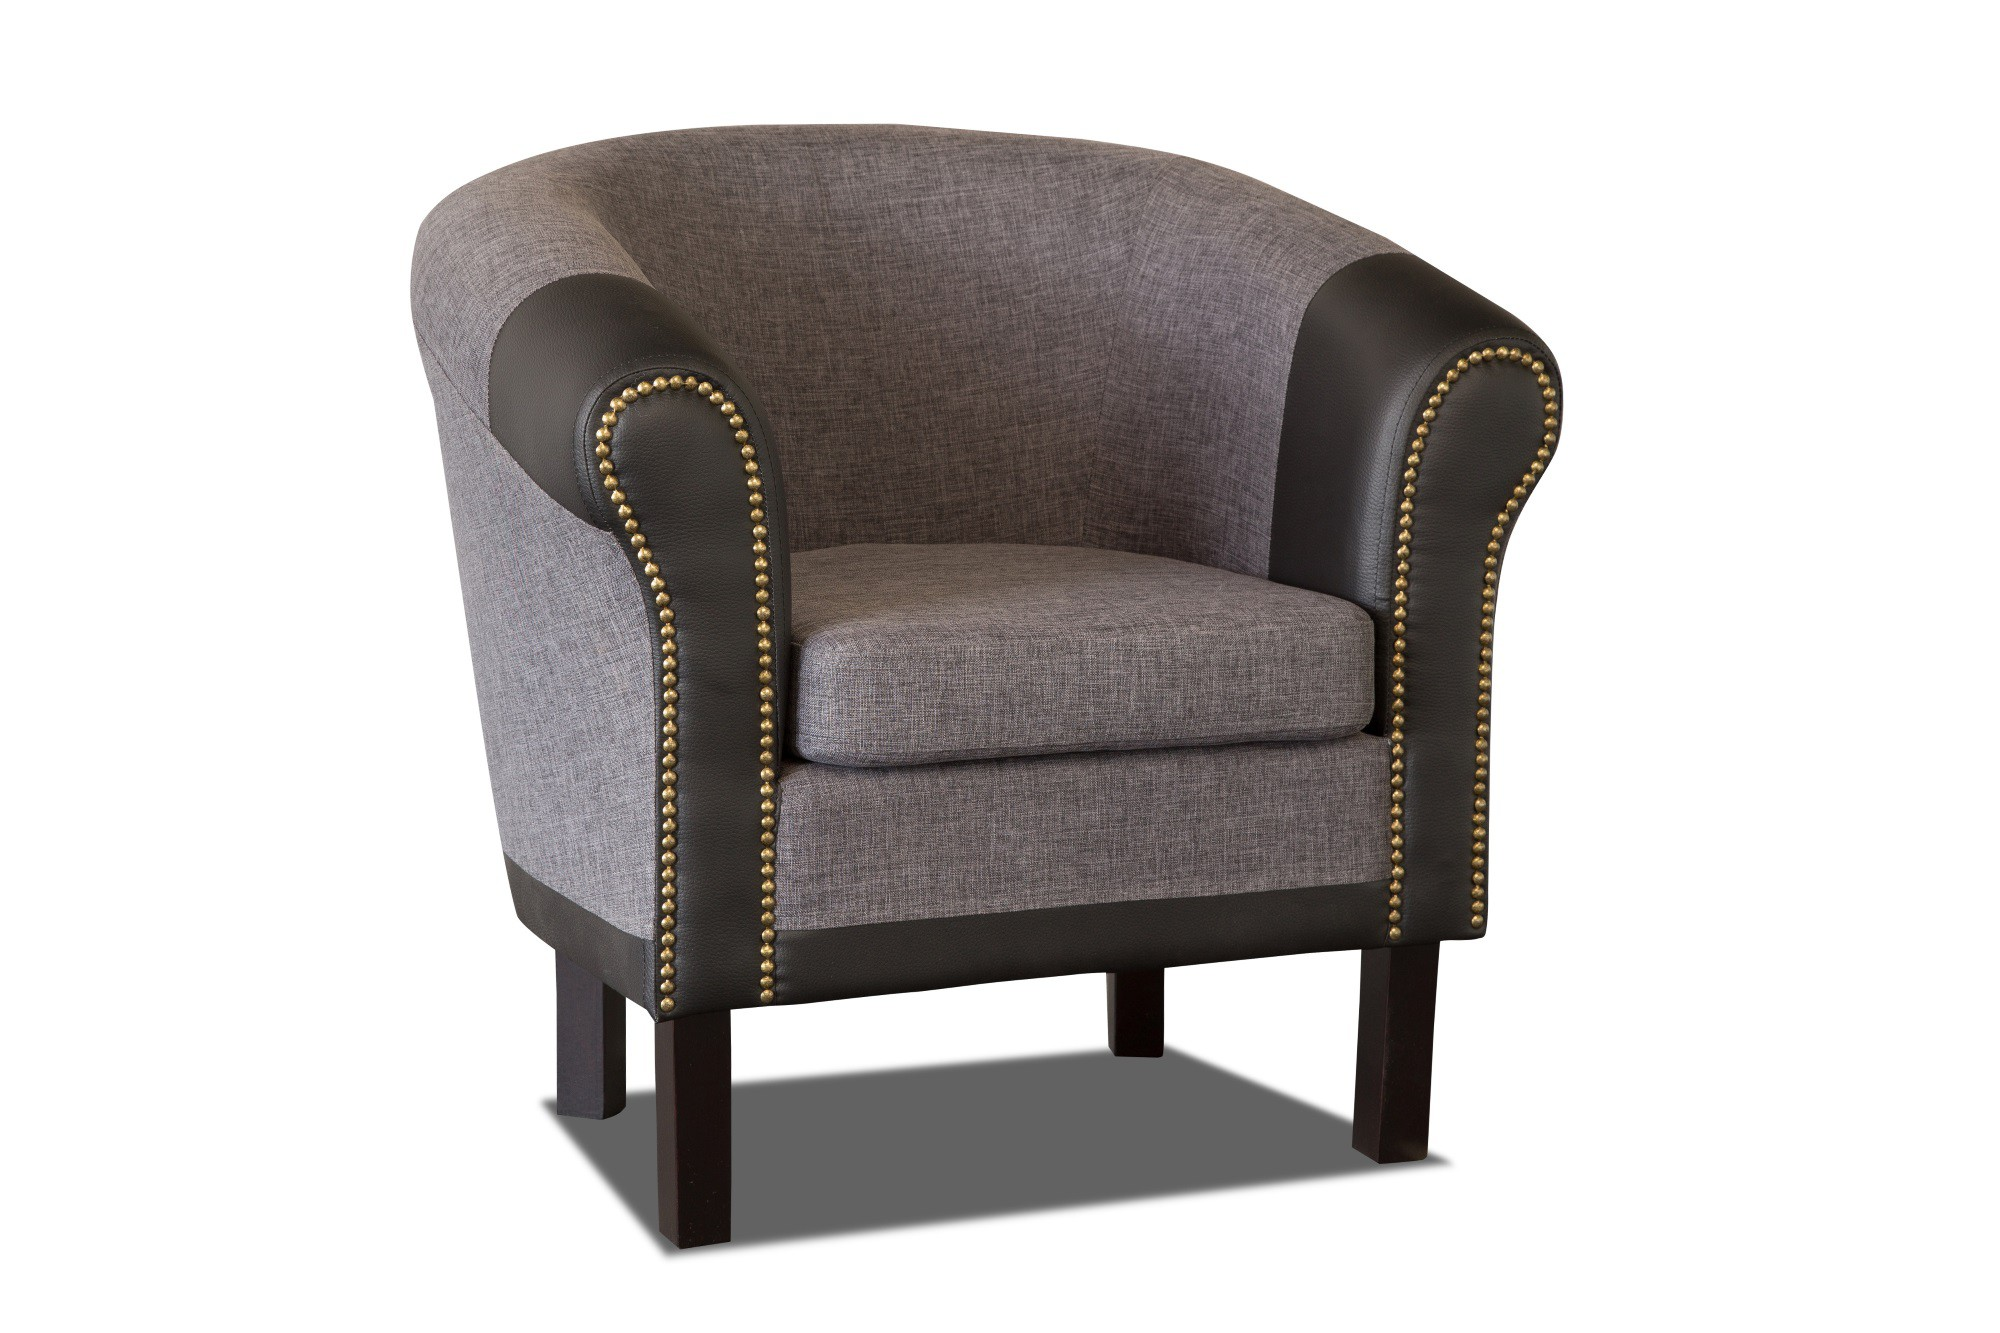 fauteuil cabriolet tissu gris id es de d coration int rieure french decor. Black Bedroom Furniture Sets. Home Design Ideas